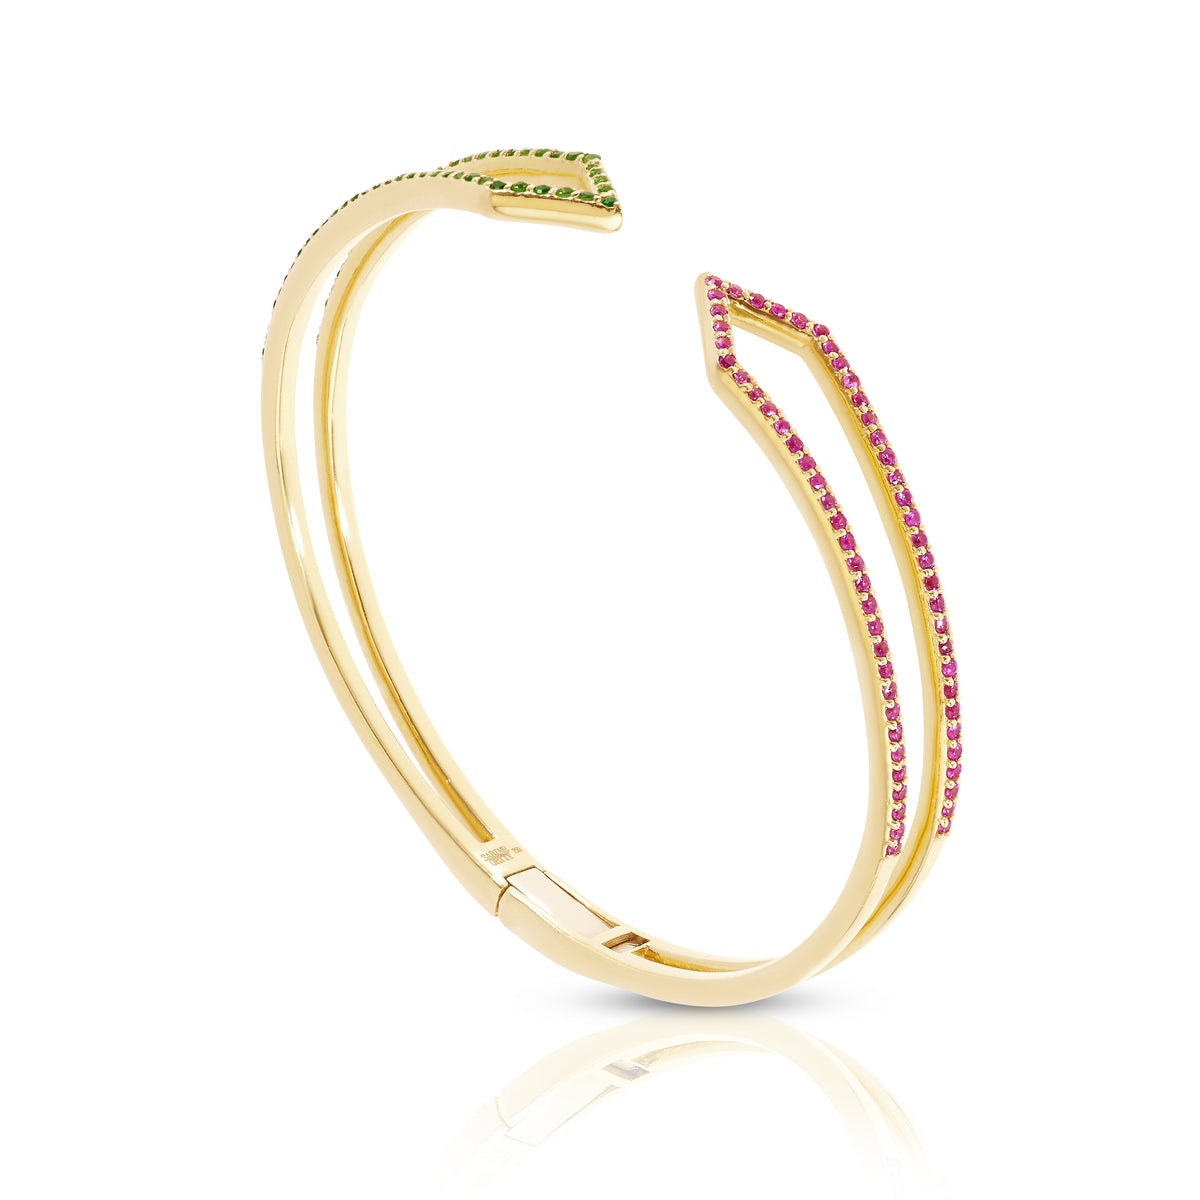 Hinged Zig-Zag Bracelet in Pink and Green